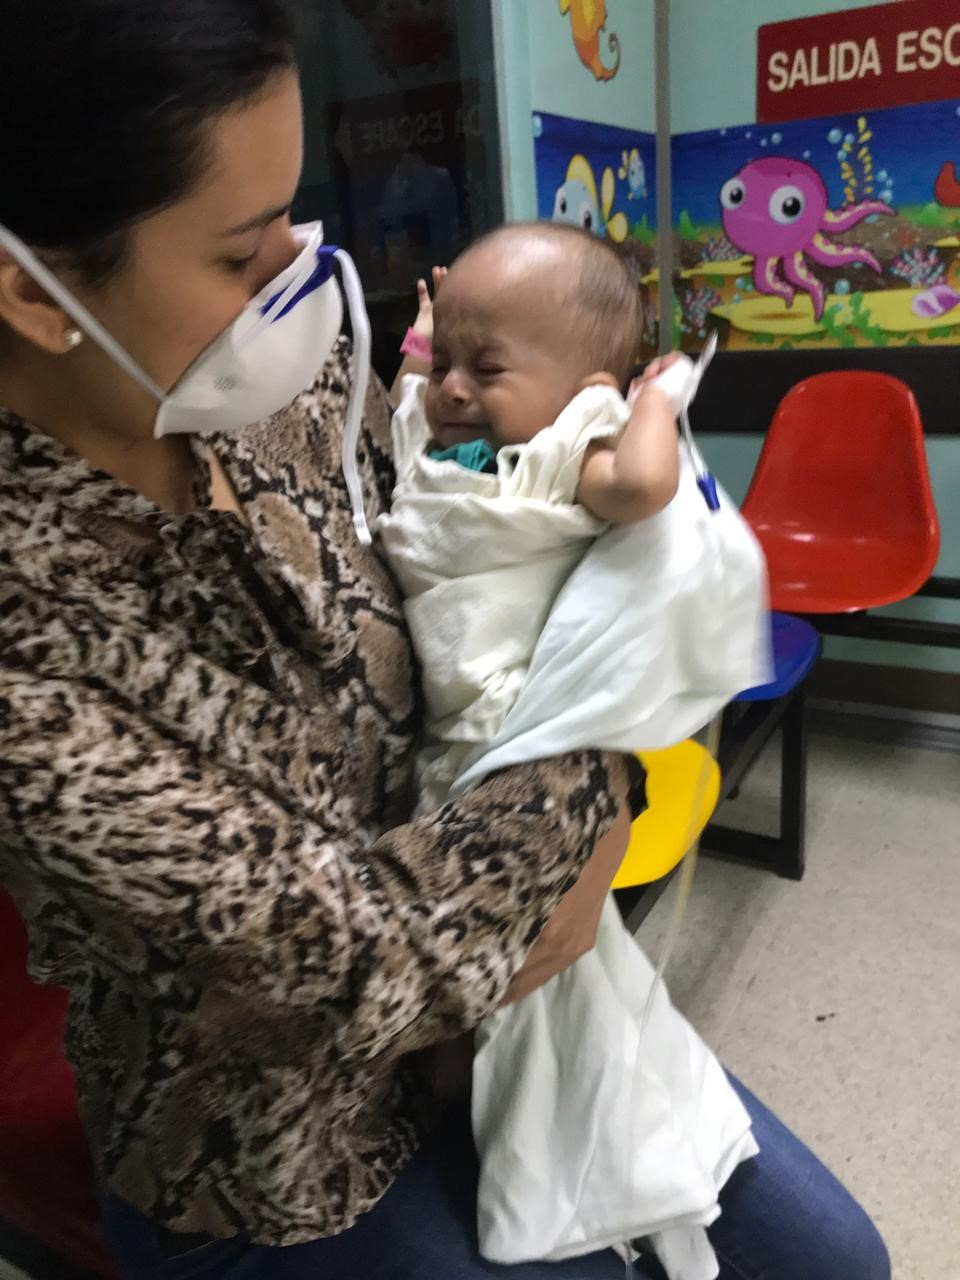 Mother wearing surgical mask holding infant.